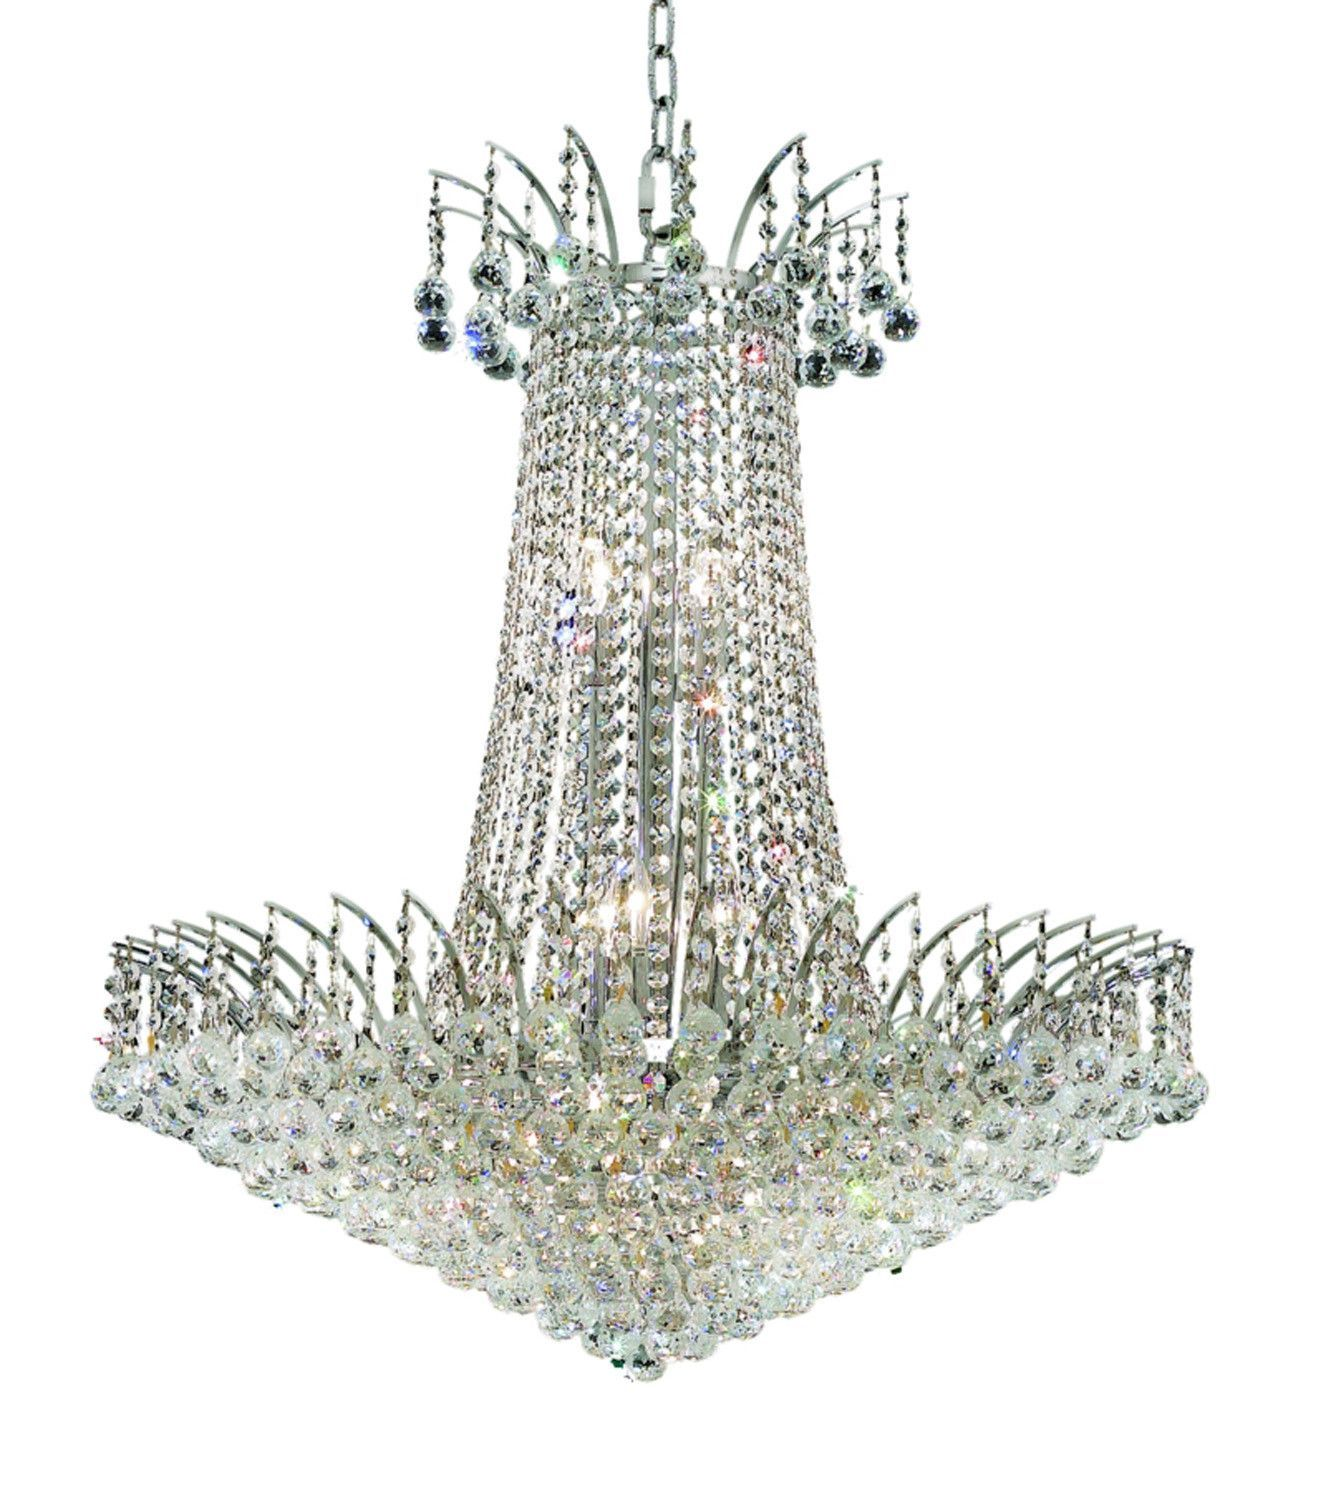 Elegant Lighting - 8031 Victoria Collection Hanging Fixture D29in H32in Lt:16 Chrome Finish (Royal Cut Crystals)